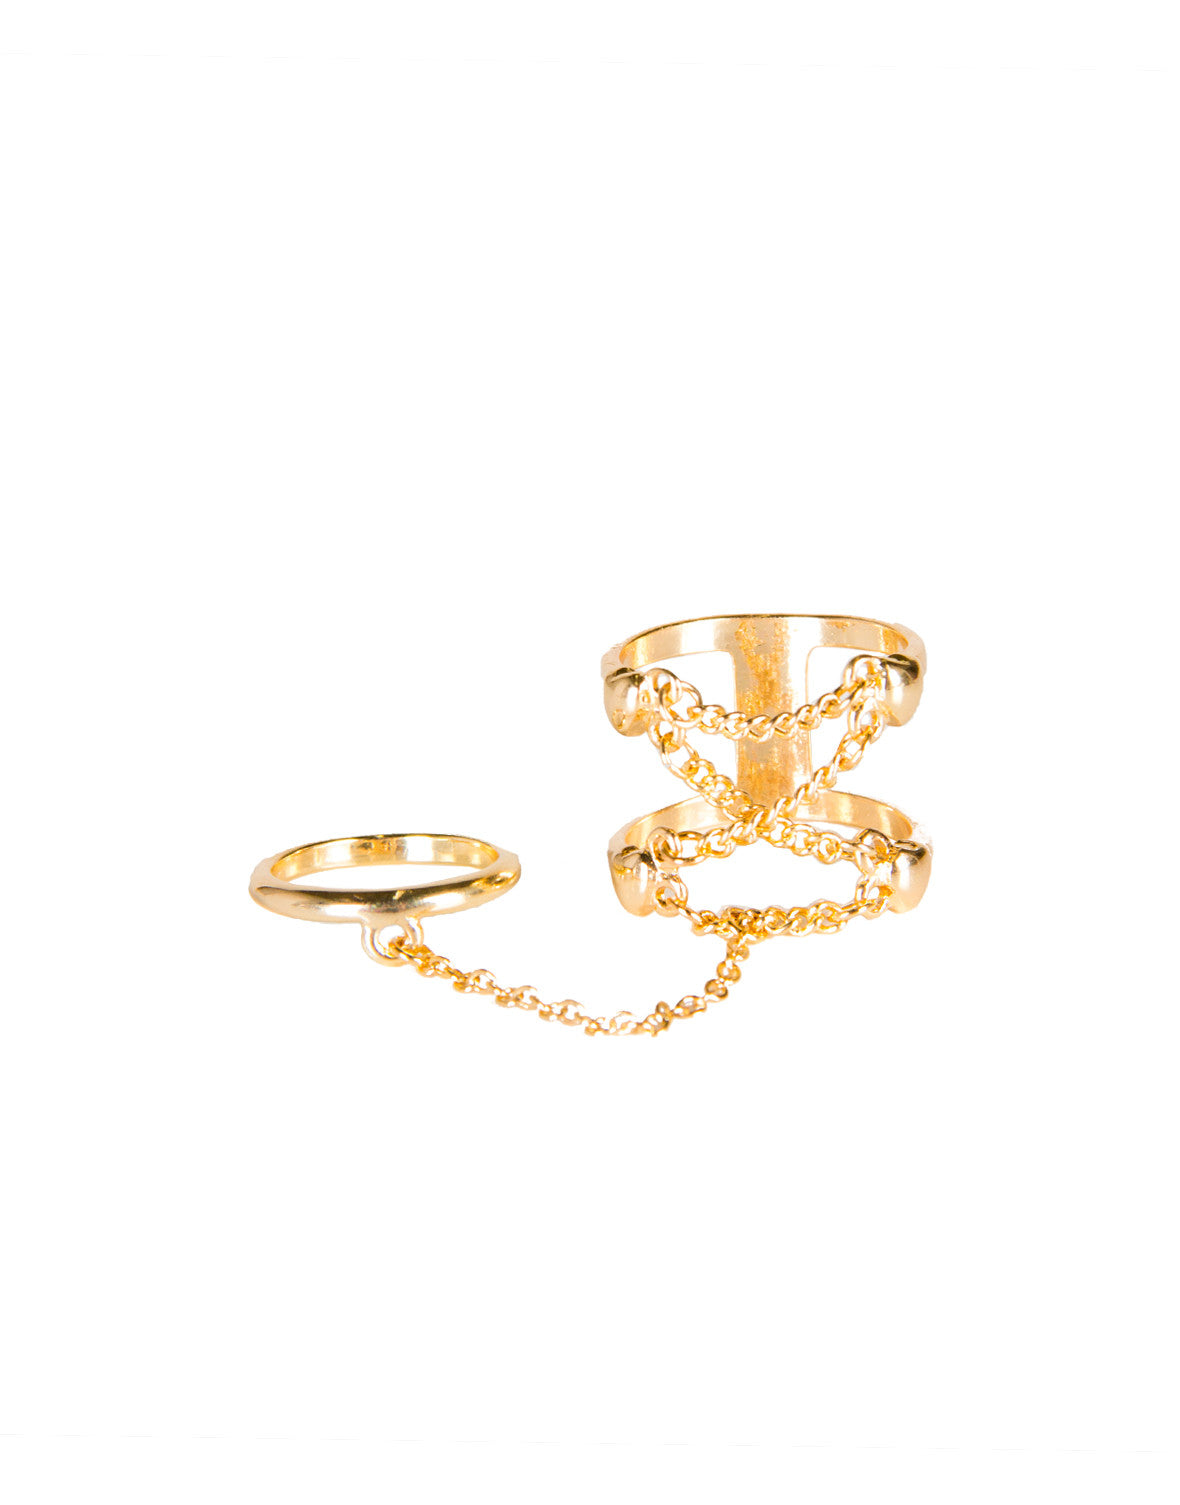 Criss Cross Chain Connected Ring Set